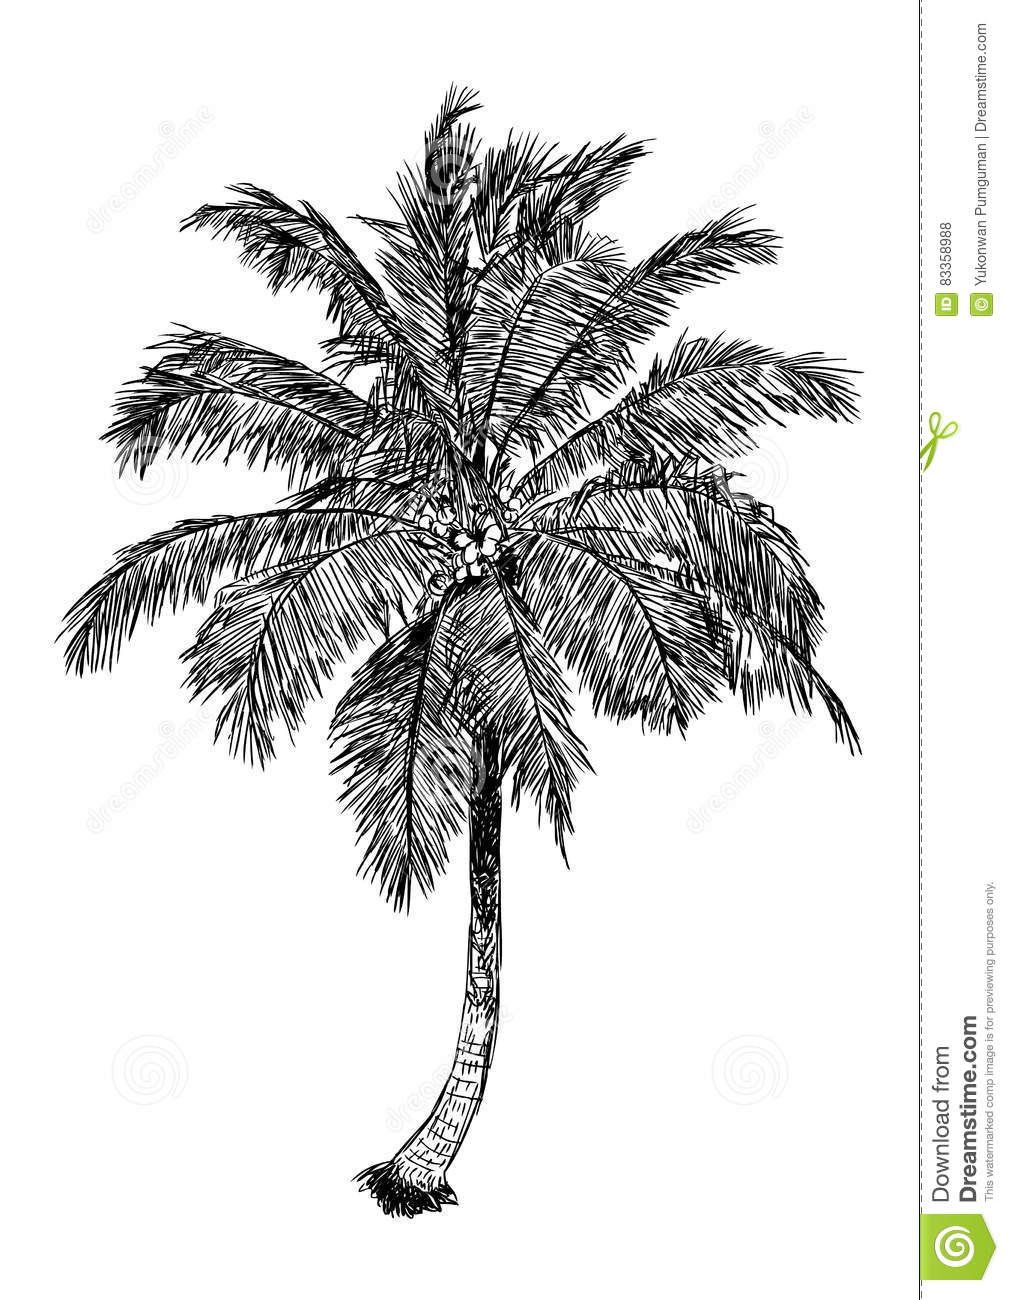 palm tree with coconuts drawing - photo #14